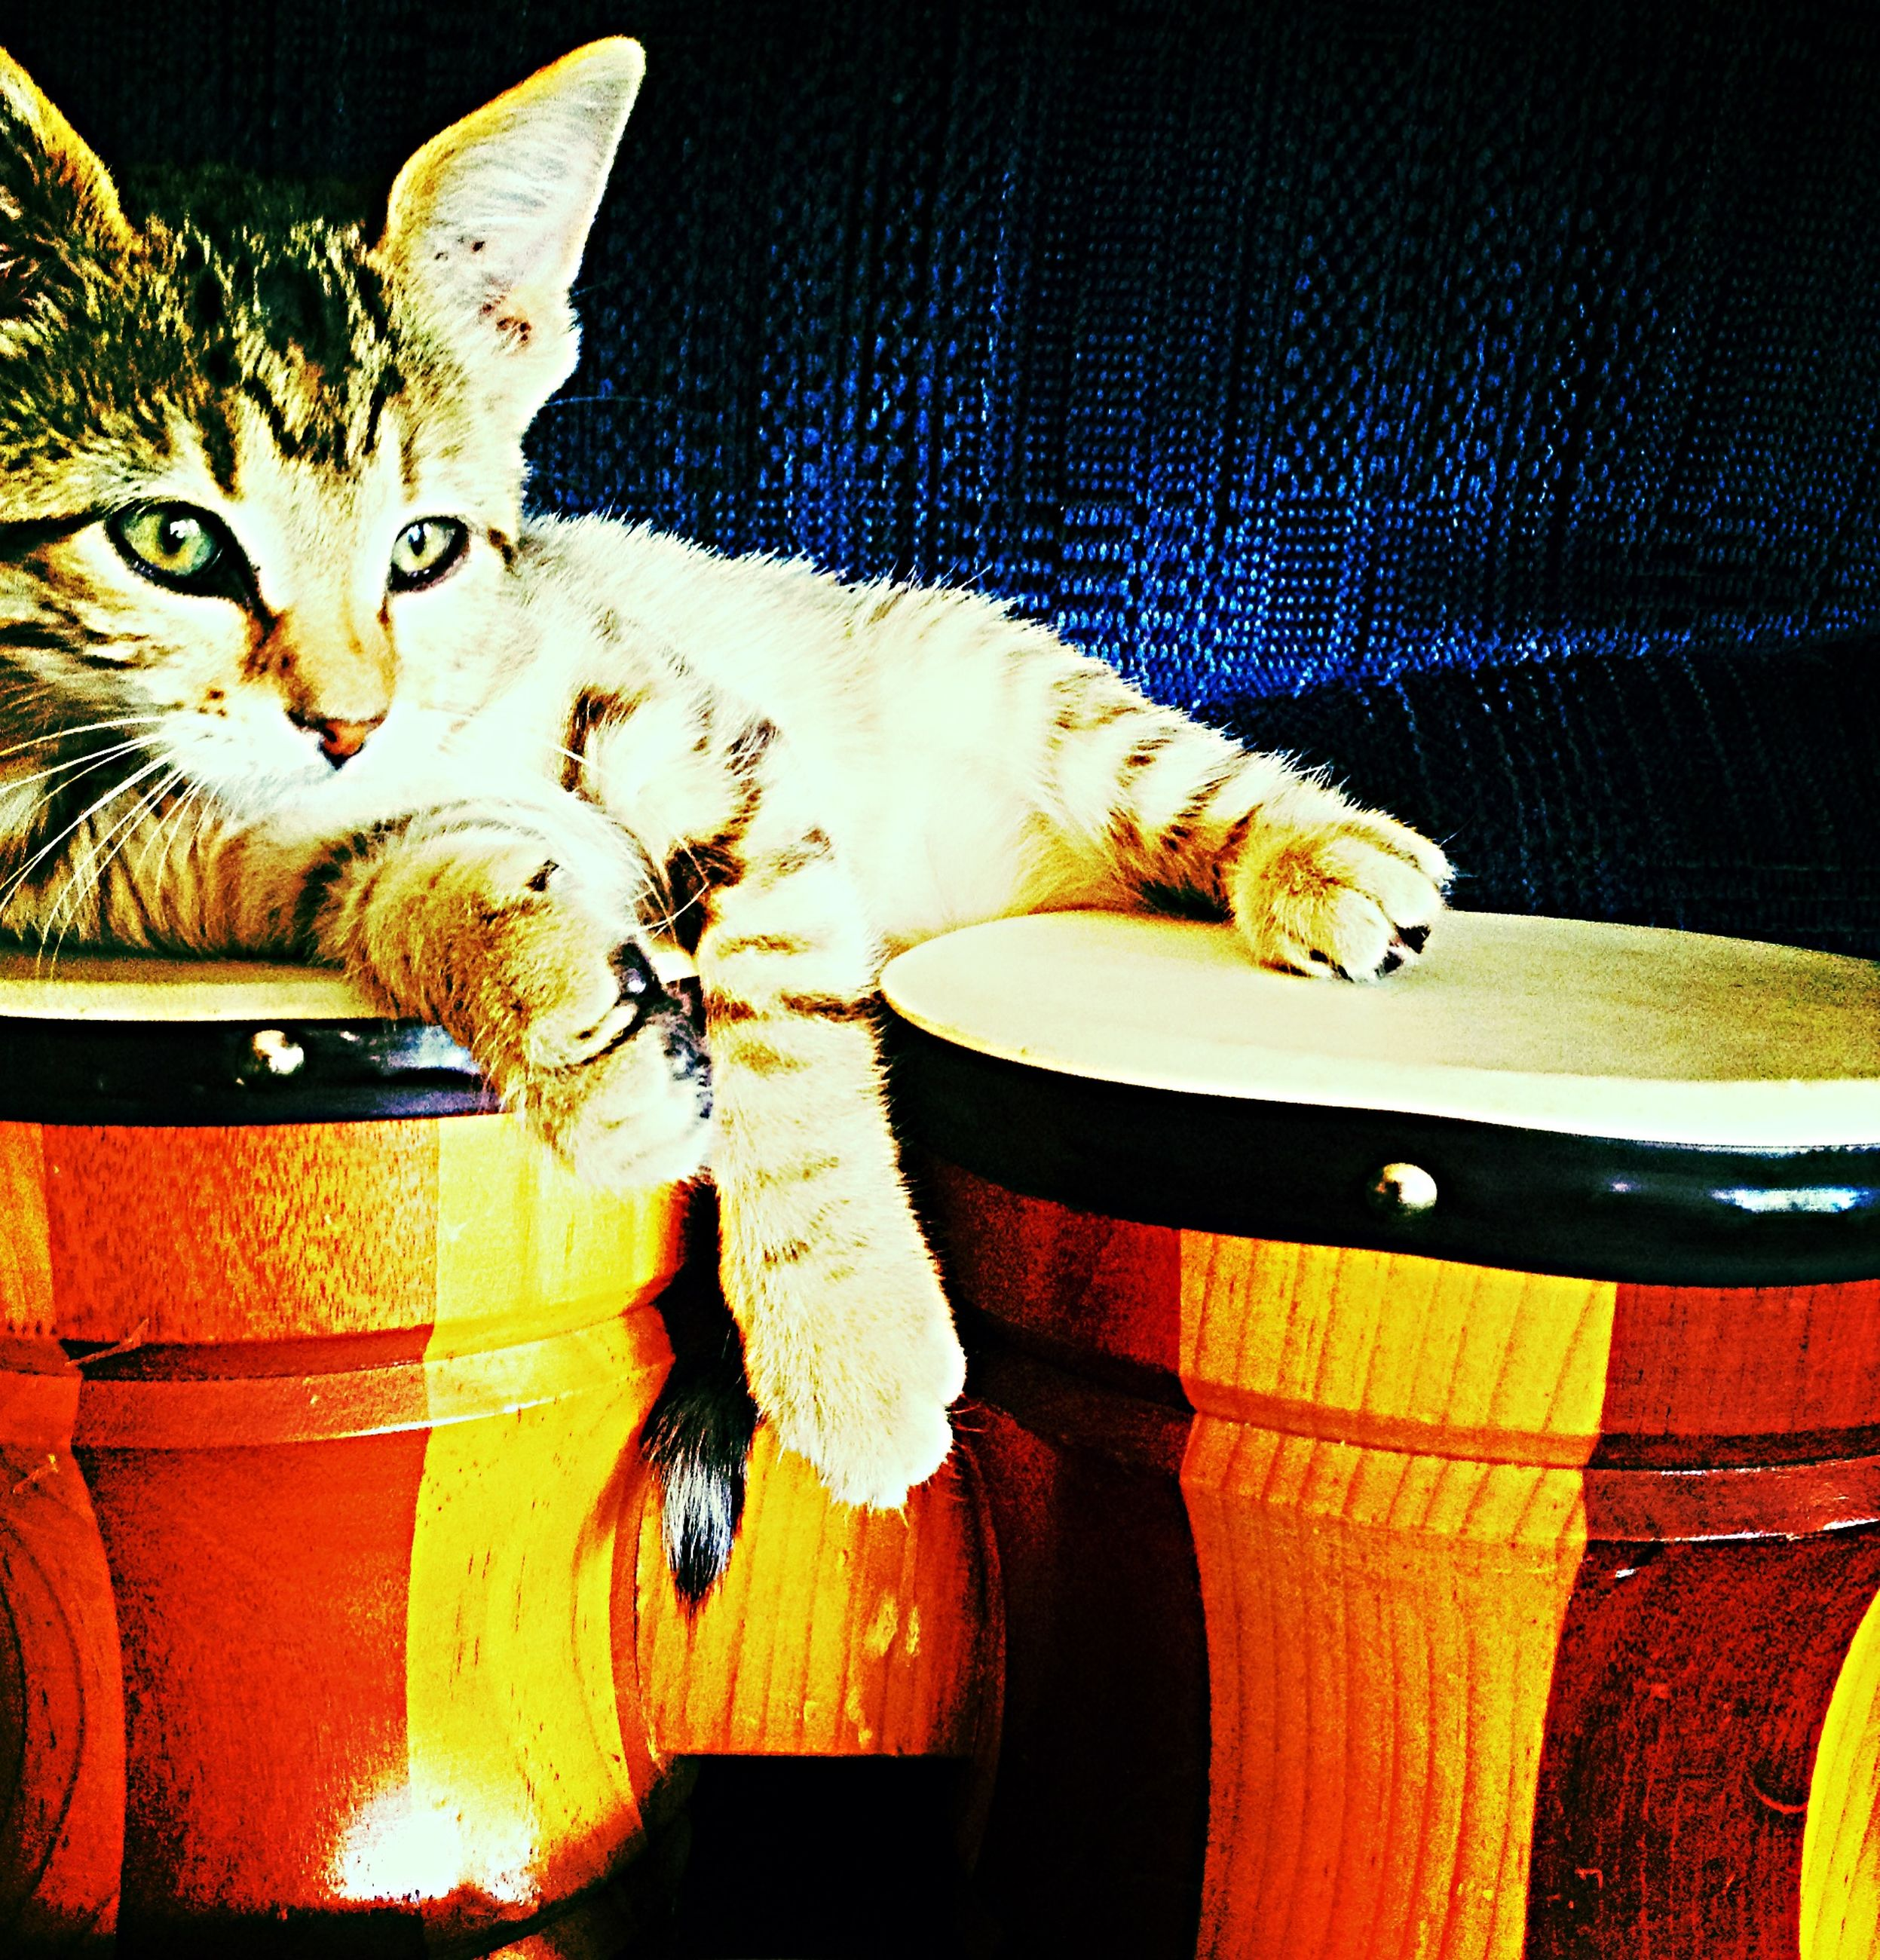 domestic cat, domestic animals, cat, pets, animal themes, mammal, feline, one animal, indoors, whisker, looking at camera, portrait, relaxation, animal representation, two animals, no people, lying down, resting, home interior, table